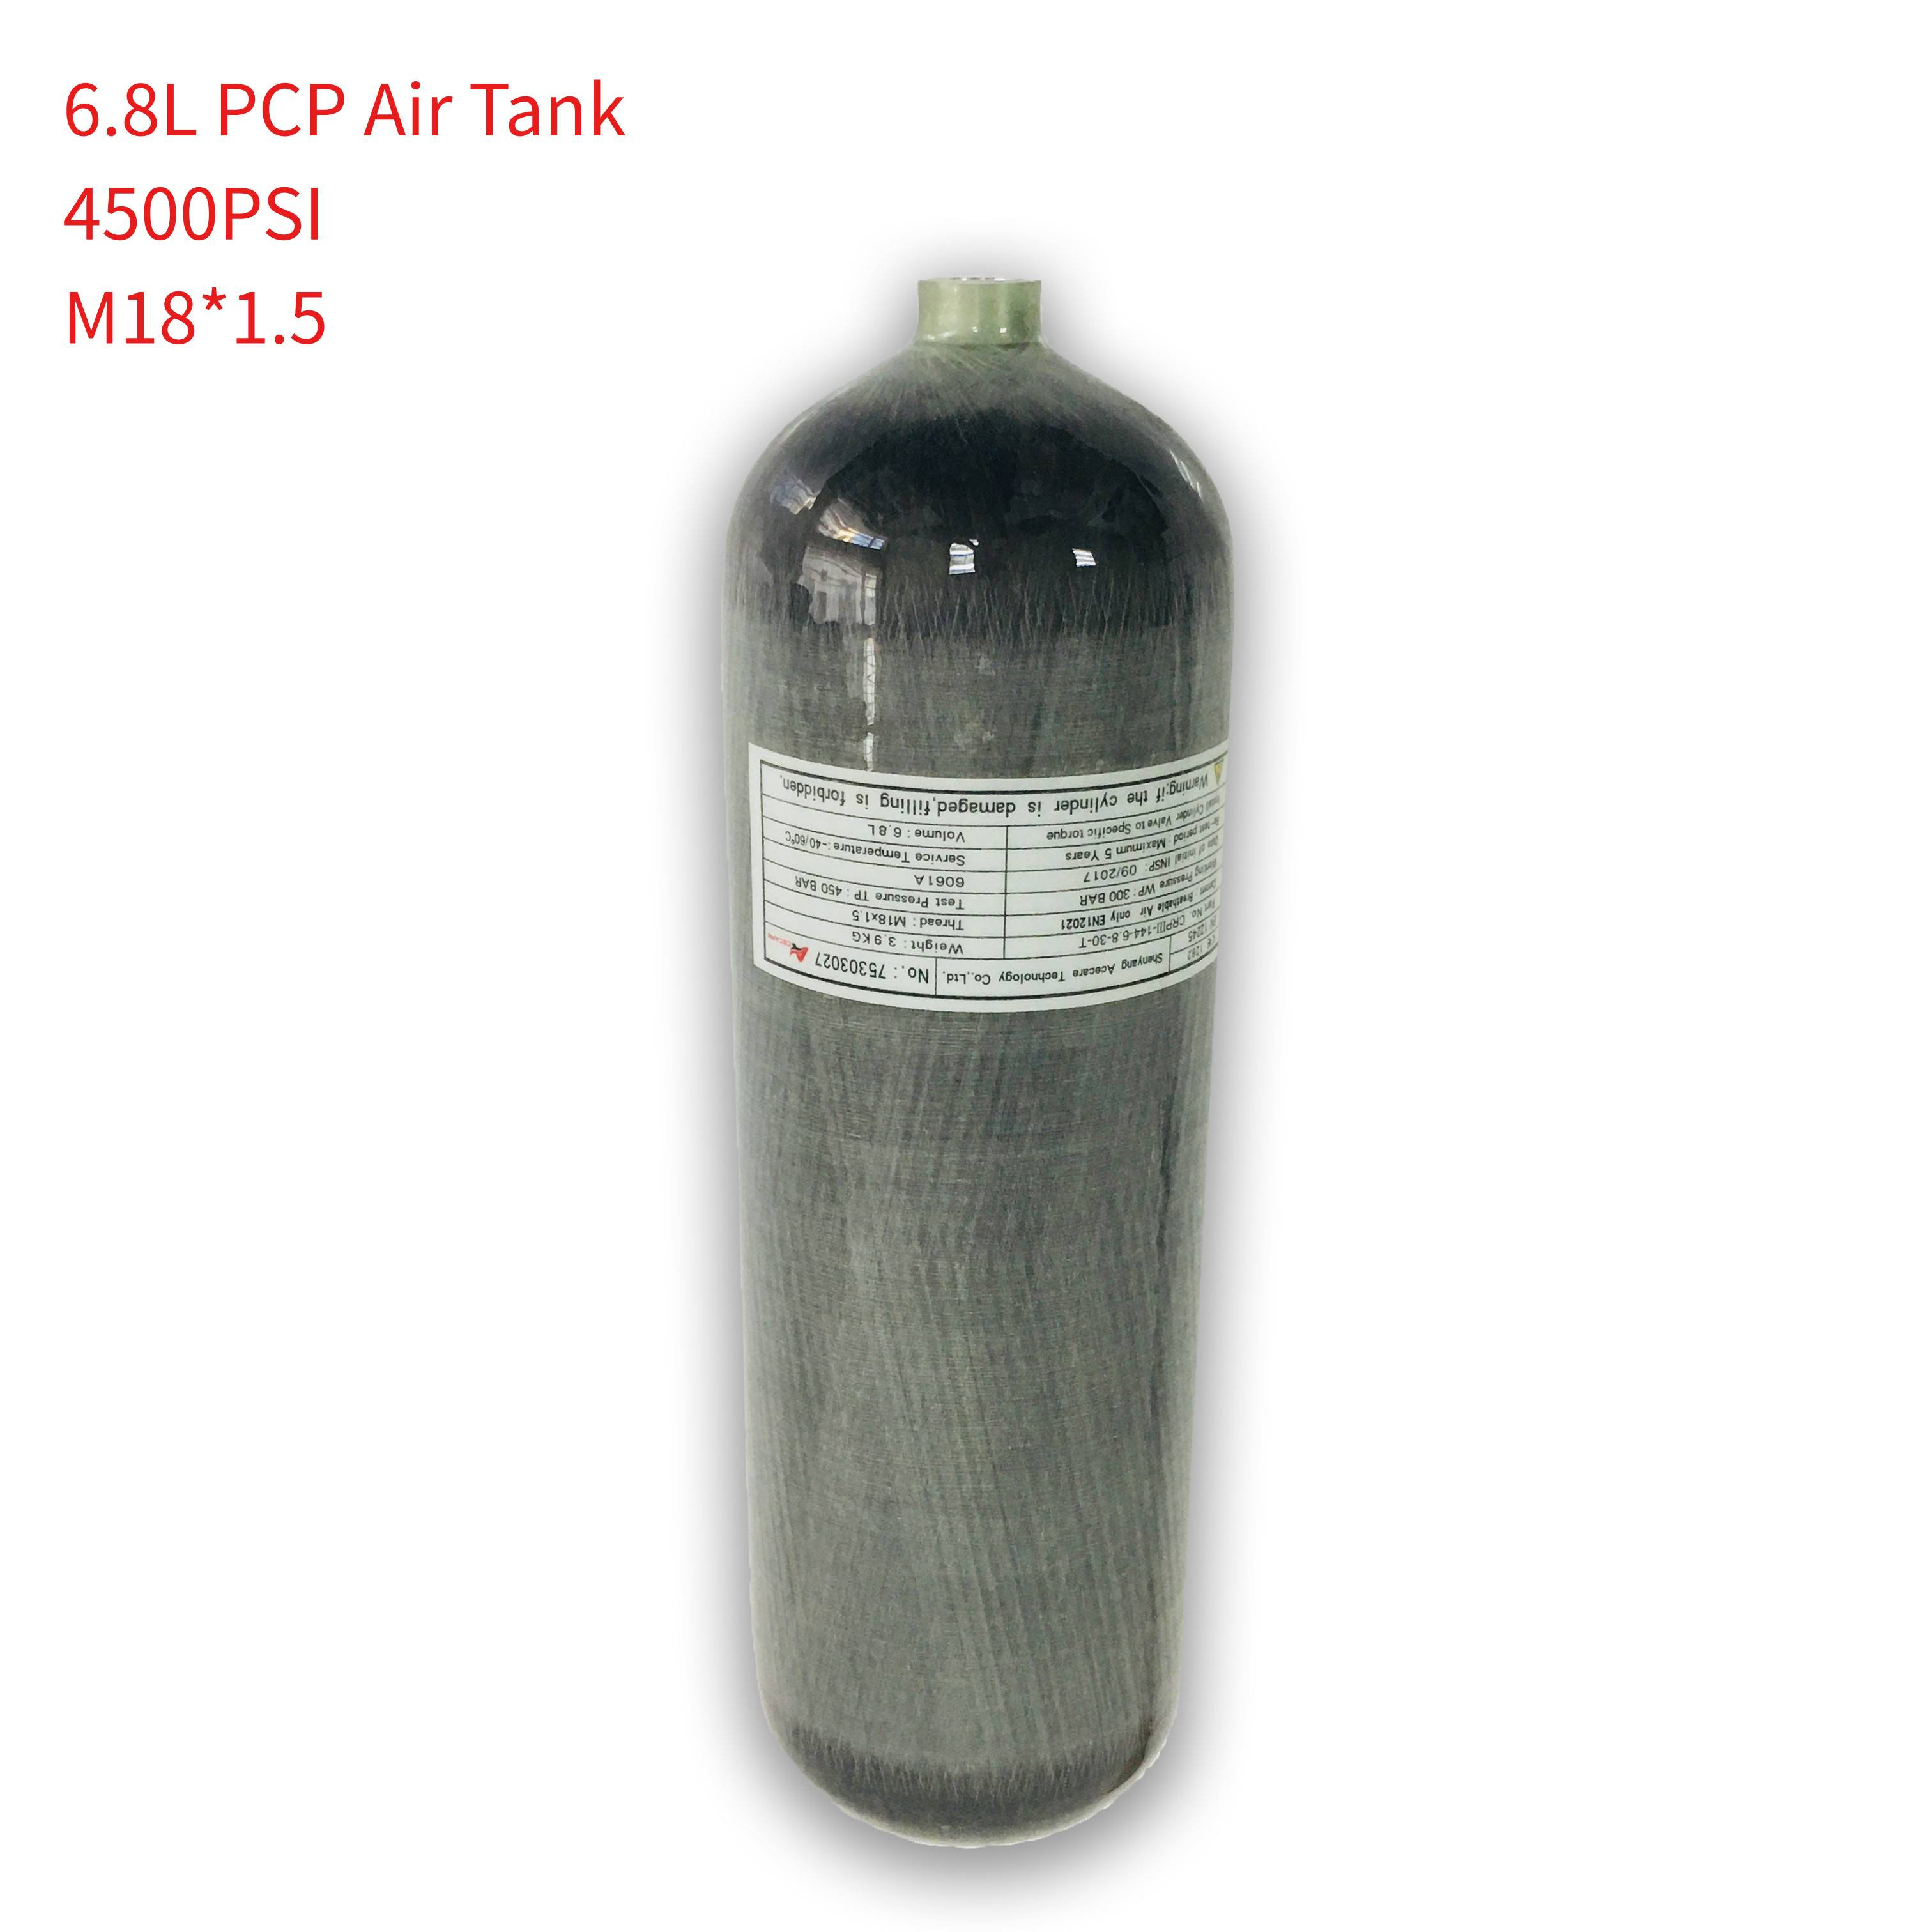 AC168 Compressed Air Guns To Hunt 6.8L Hpa Gas Cylinder Diving Bottle Co2 Paintballing Rifle Underwater Airgun Pcp Gun Pressure